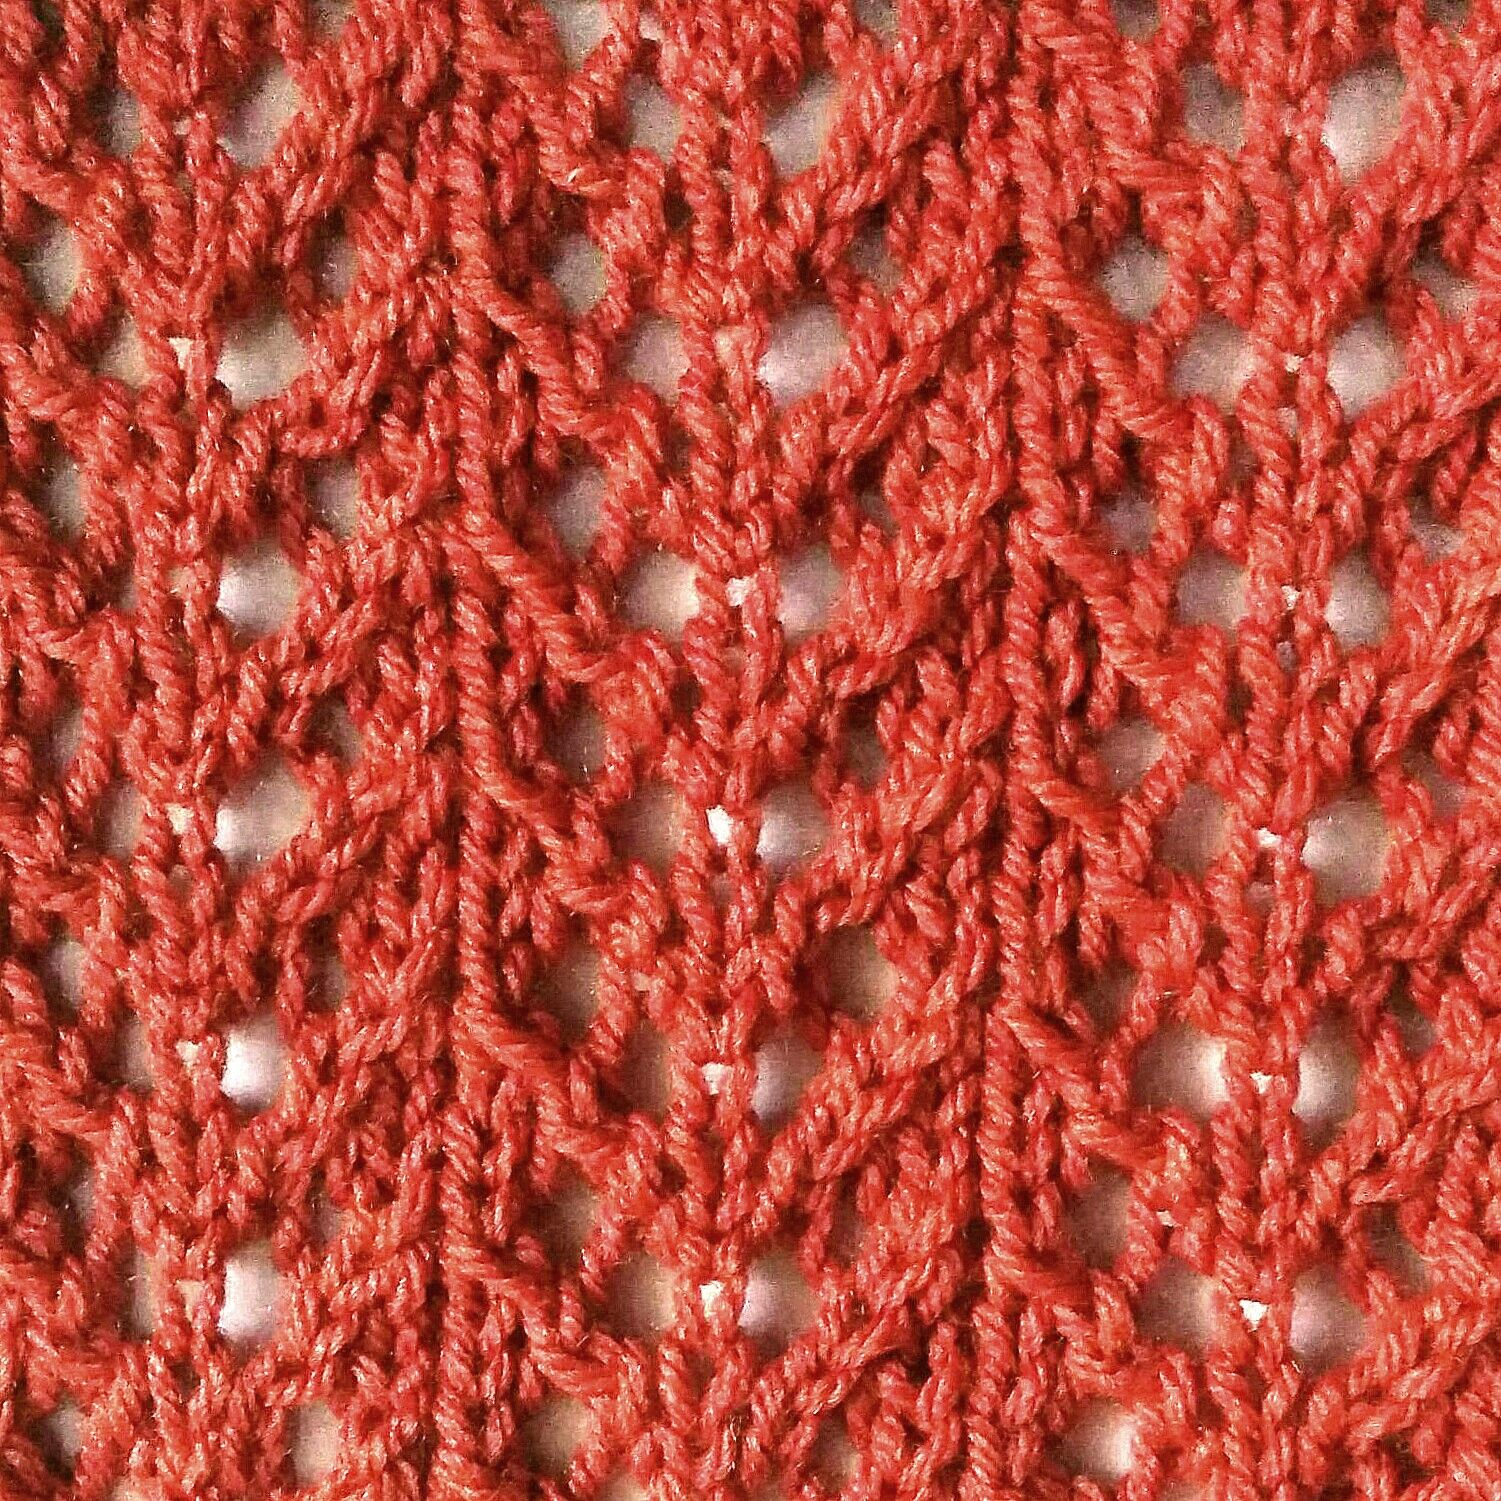 Requiring Only Simple Knitting Techniques And Done In A 4 Row Repeat